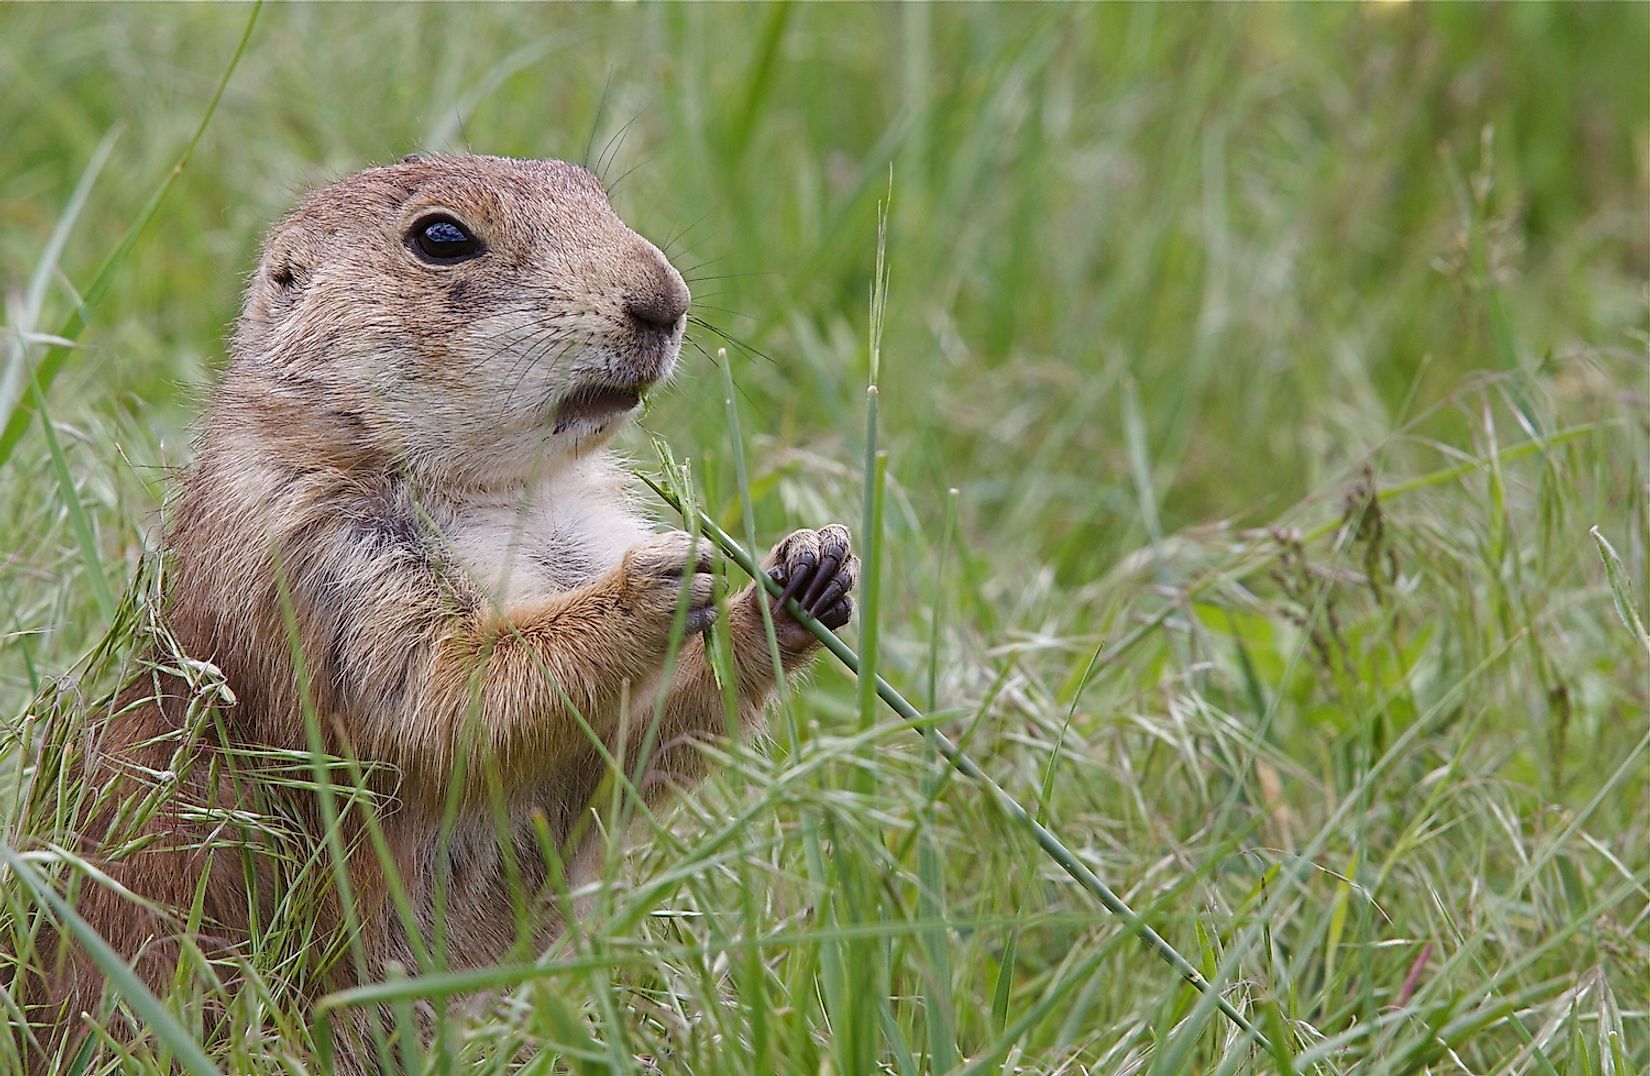 Black Tailed Prairie Dog feeding. Image credit: Tom Reichner/Shutterstock.com